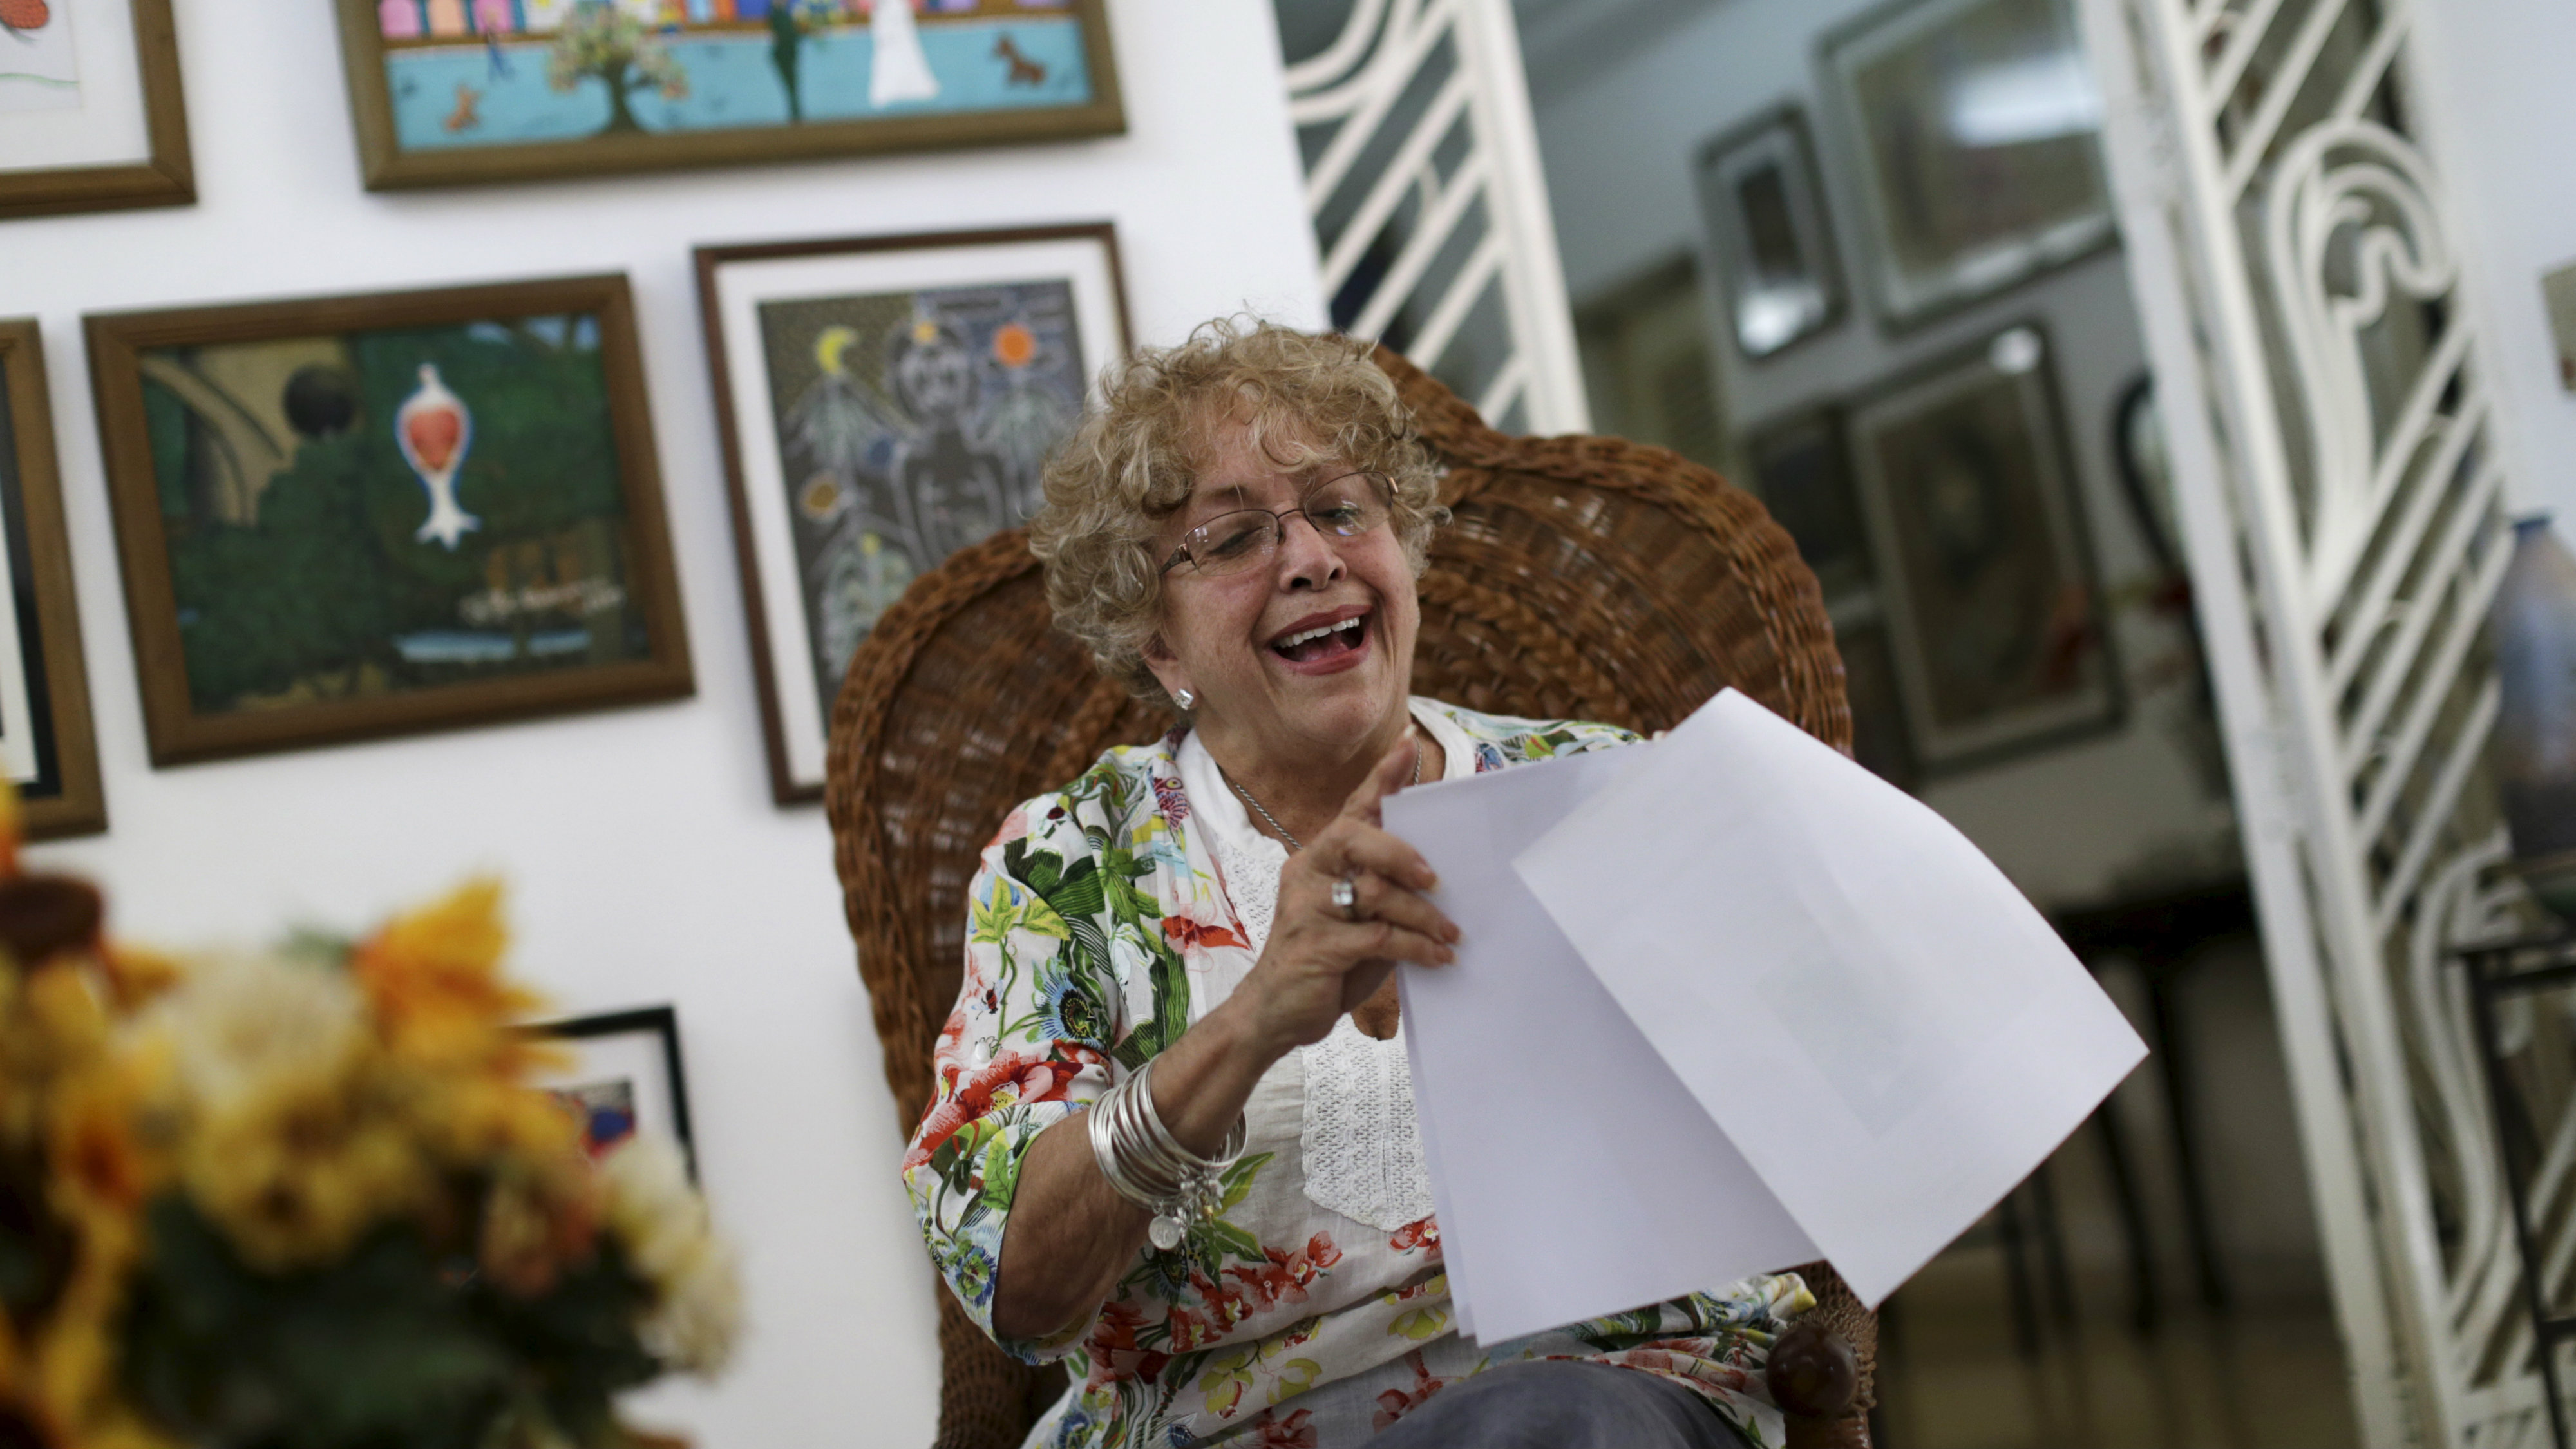 Ileana R. Yarza laughs while holding a print-out of a letter U.S. President Barack Obama is sending her via a flight carrying the first batch of U.S. direct mail to Cuba, after both countries agreed to restore direct postal service after a half-century rupture, at her home in Havana, March 17, 2016. REUTERS/Ueslei Marcelino